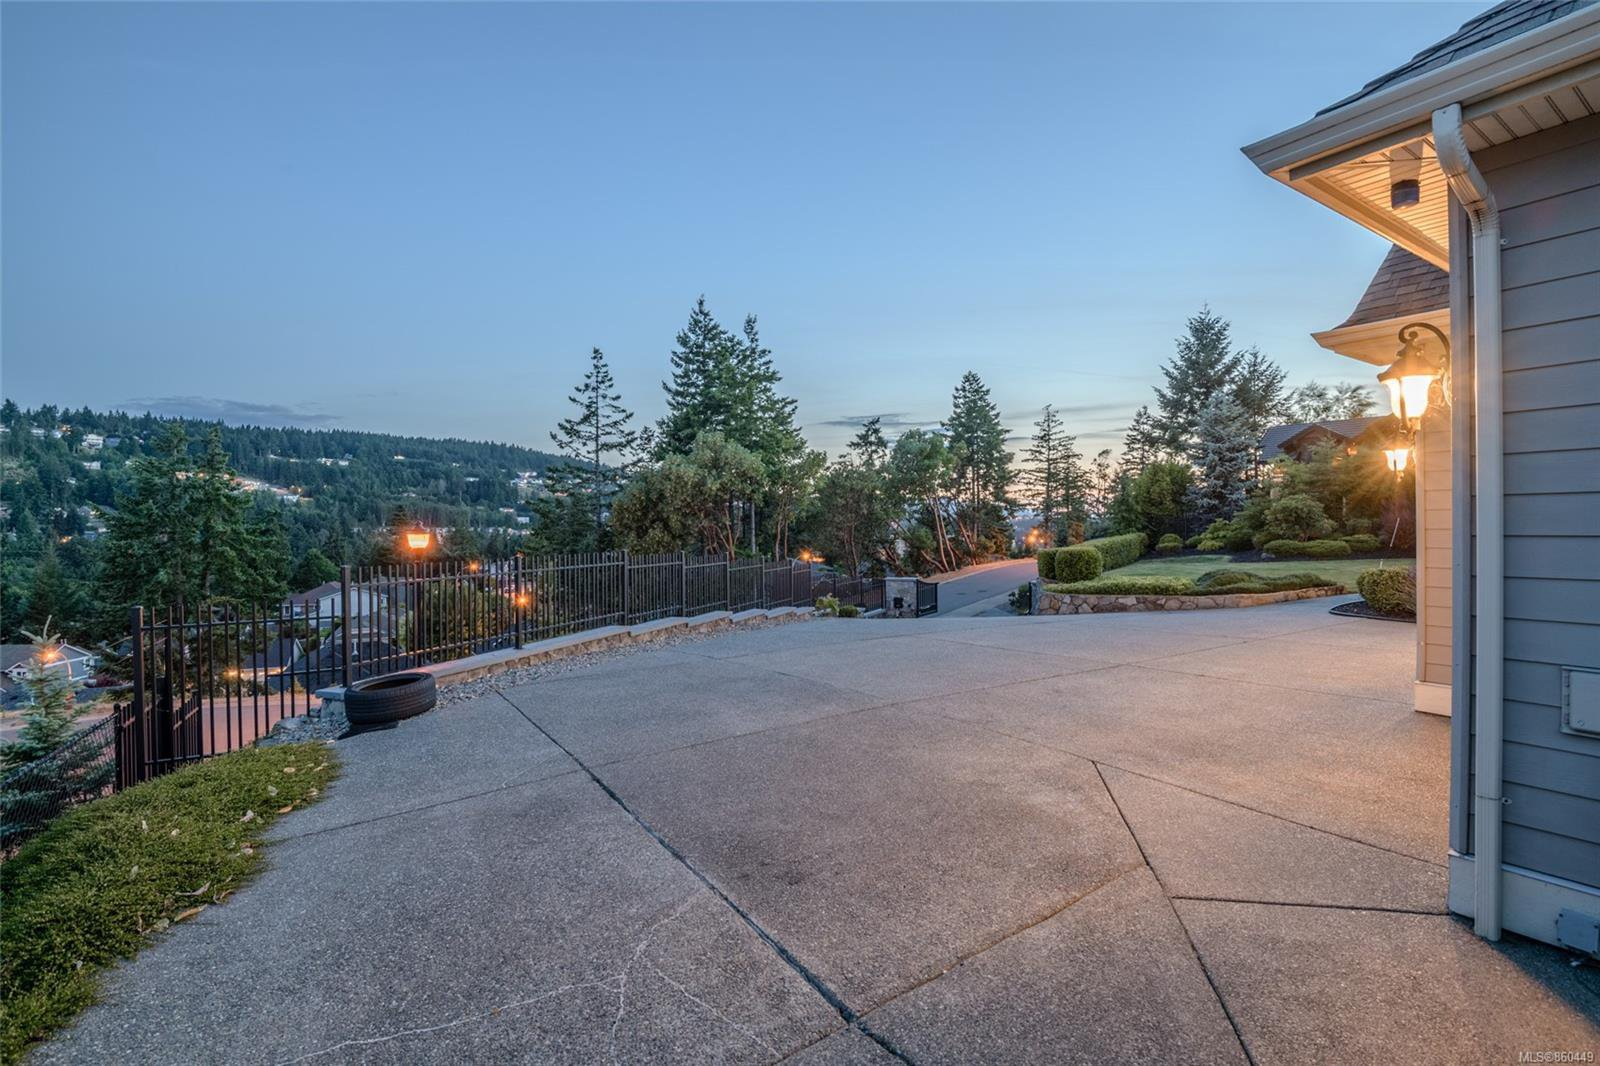 Photo 51: Photos: 5019 Hinrich View in : Na North Nanaimo House for sale (Nanaimo)  : MLS®# 860449